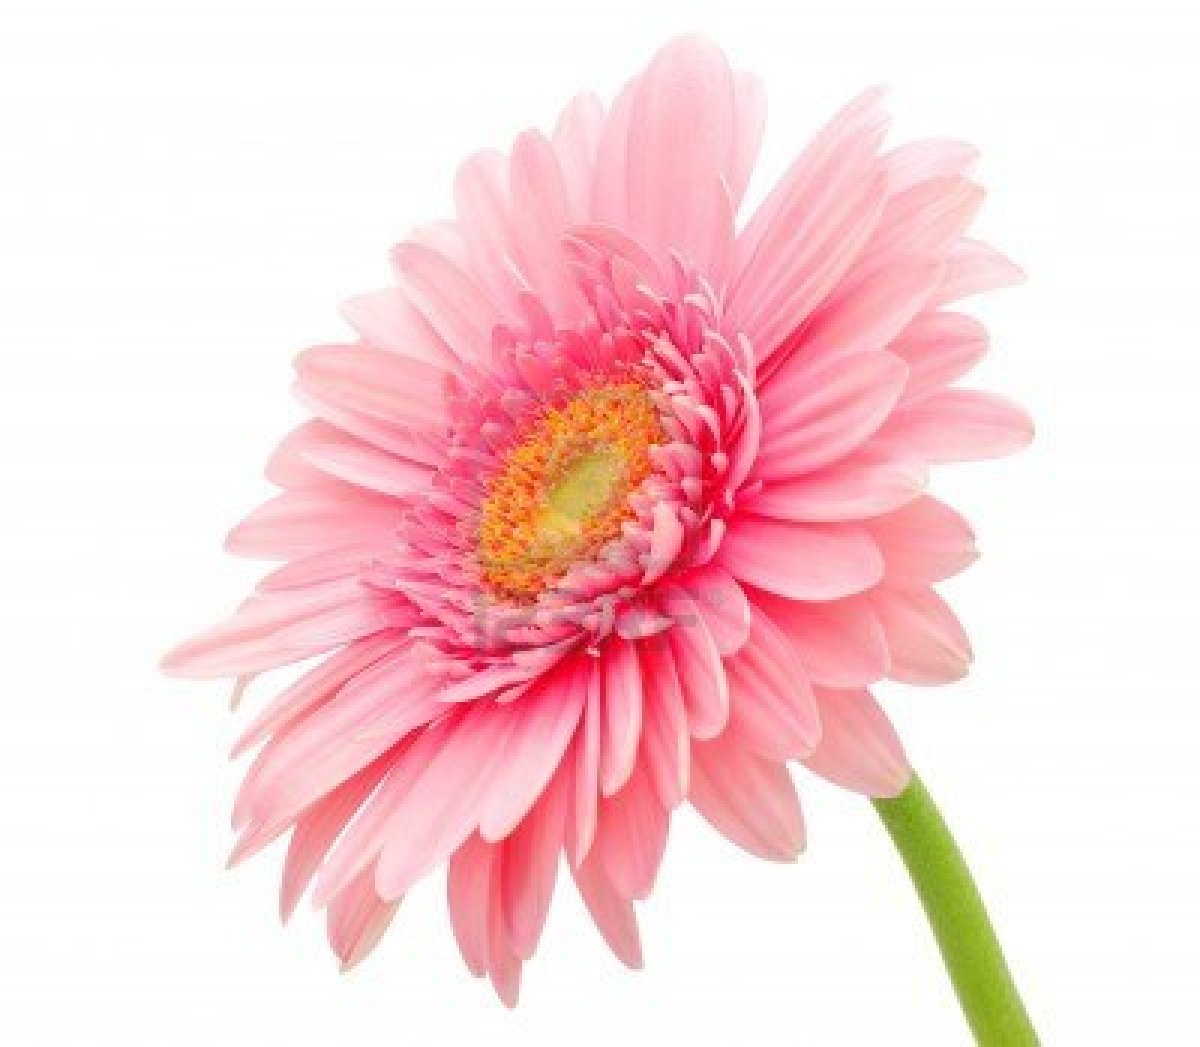 Pink Daisy Wallpaper - WallpaperSafari